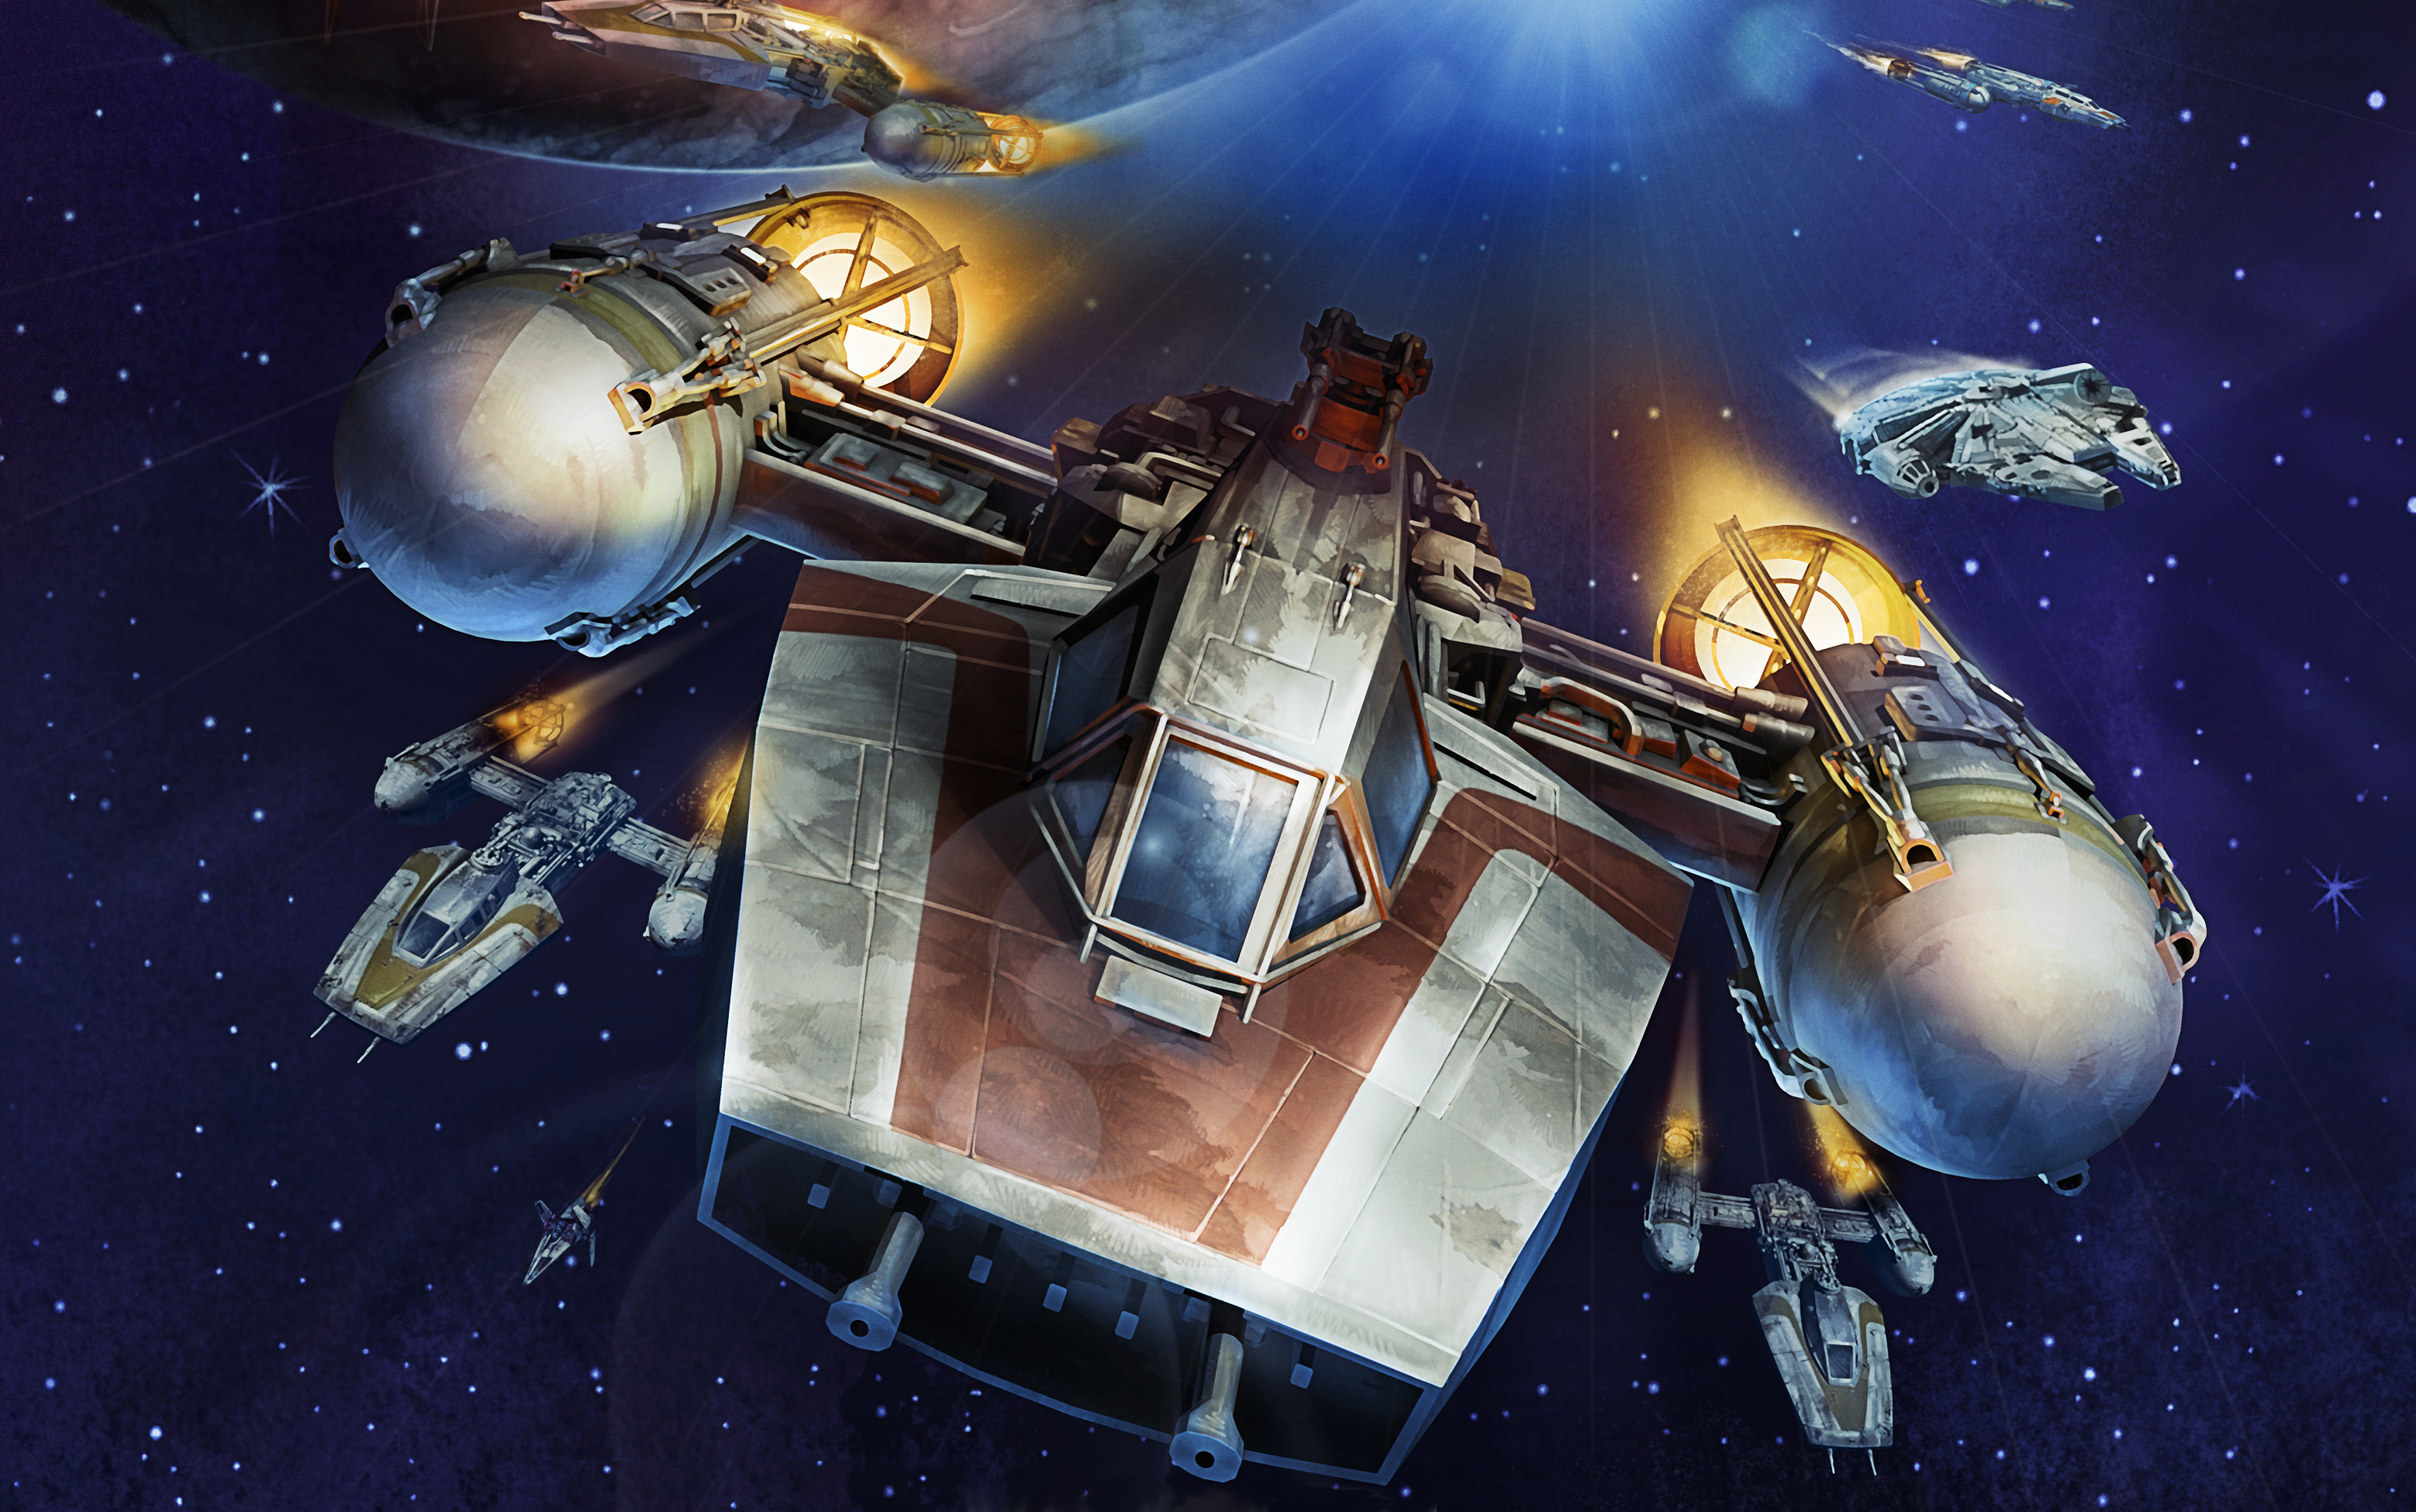 X Wing Thematic Squads Battle Of Endor Rebels The Jodo Cast